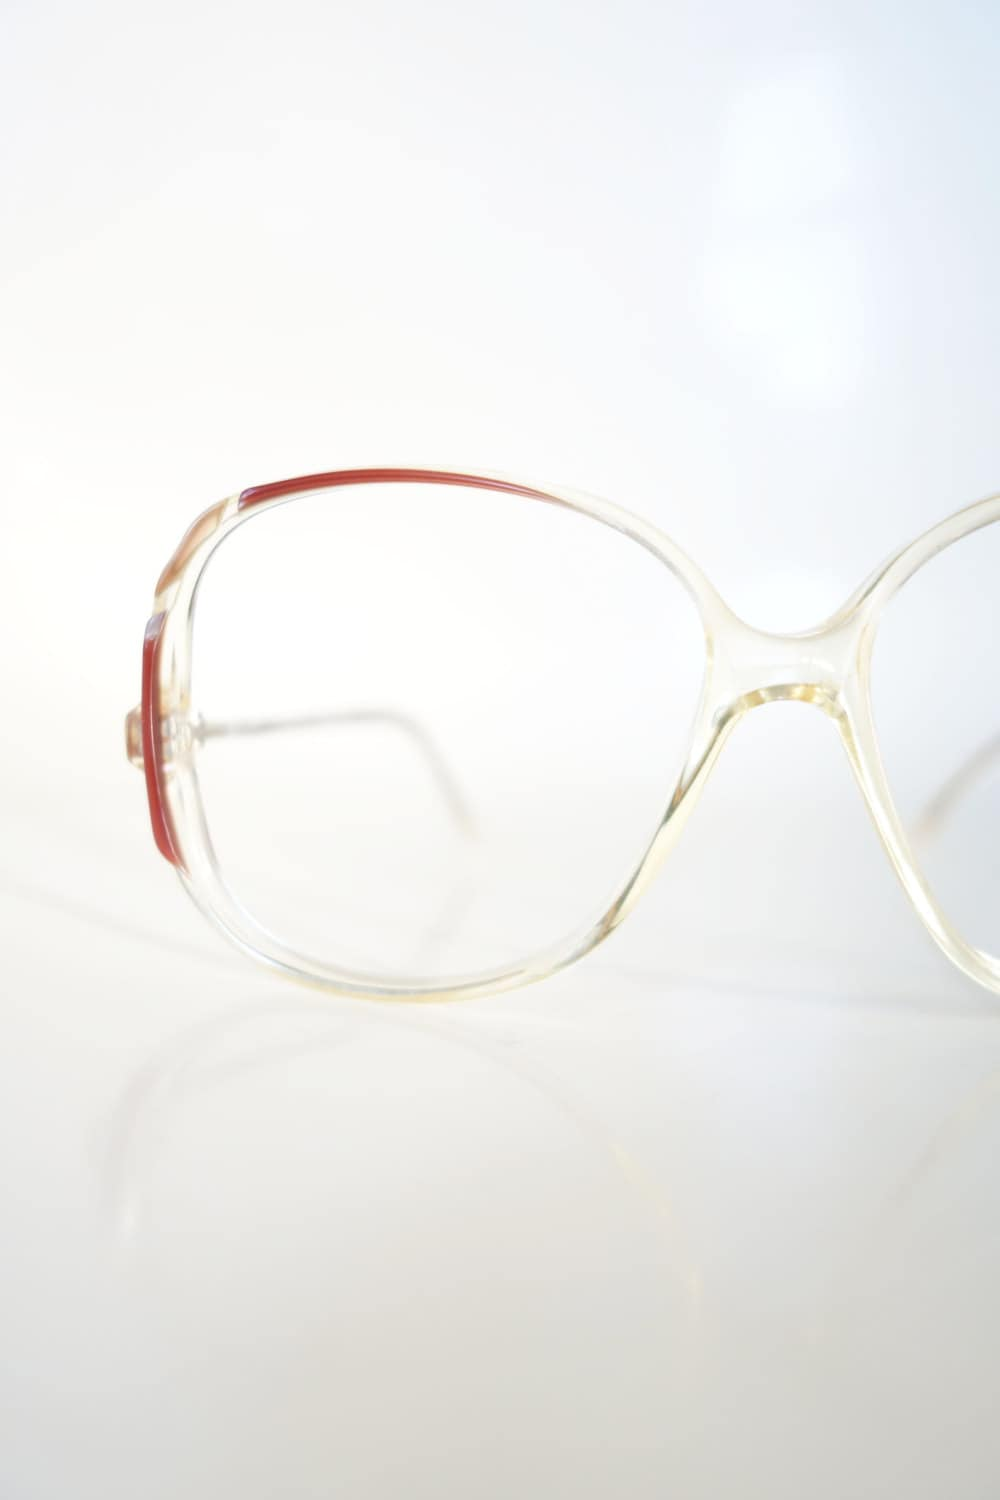 62504fdba1d 1980s Clear Oversized Glasses Vintage Transparent Optical